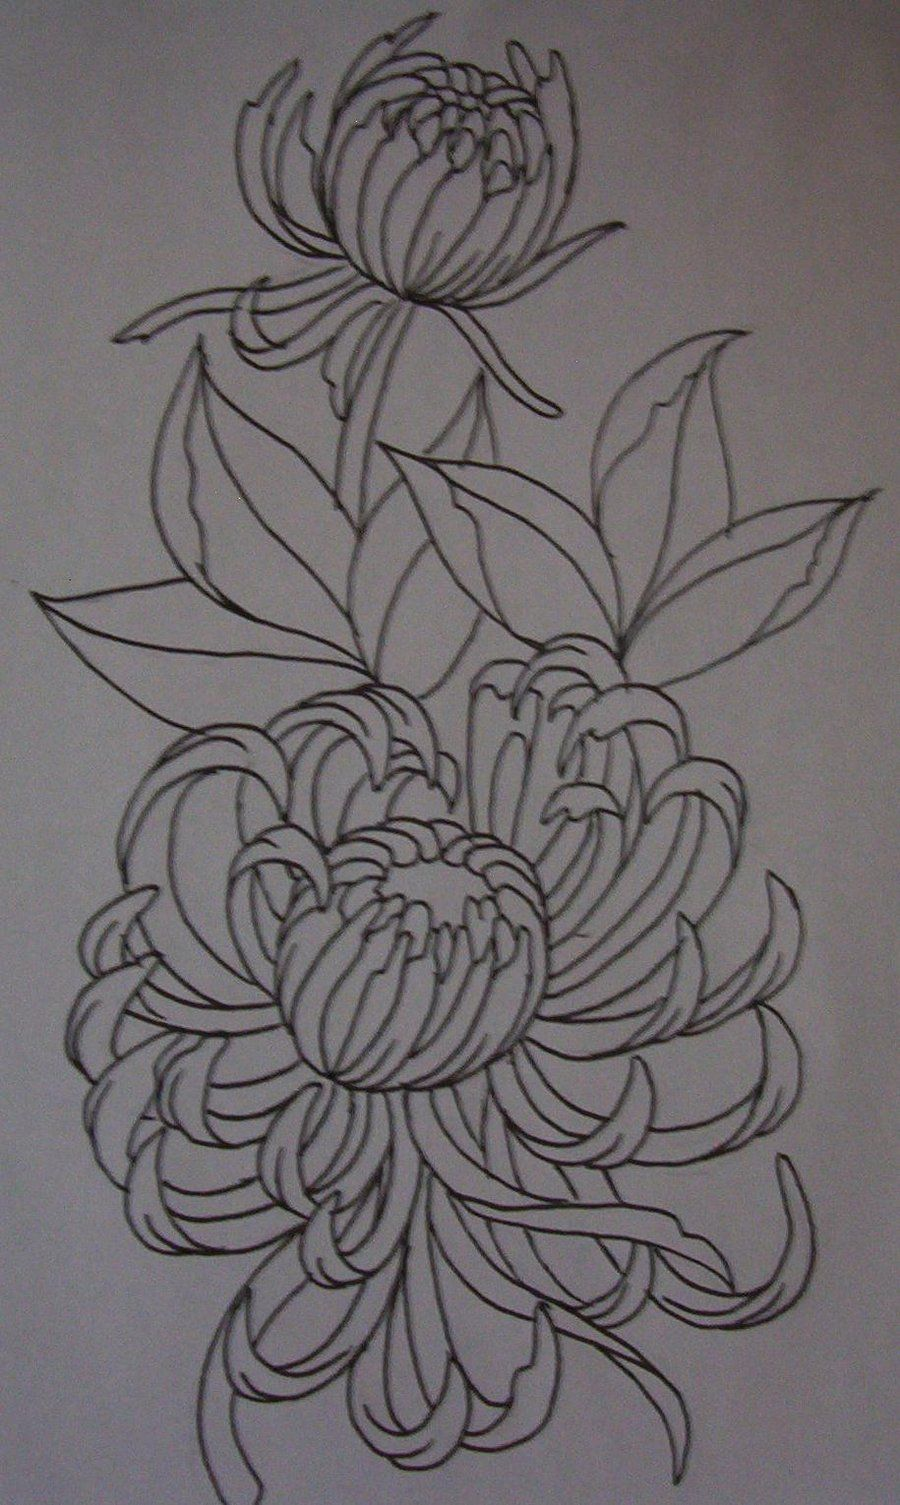 Lotus Flower Drawings For Tattoos Lotus Flower Sketch Tattoo